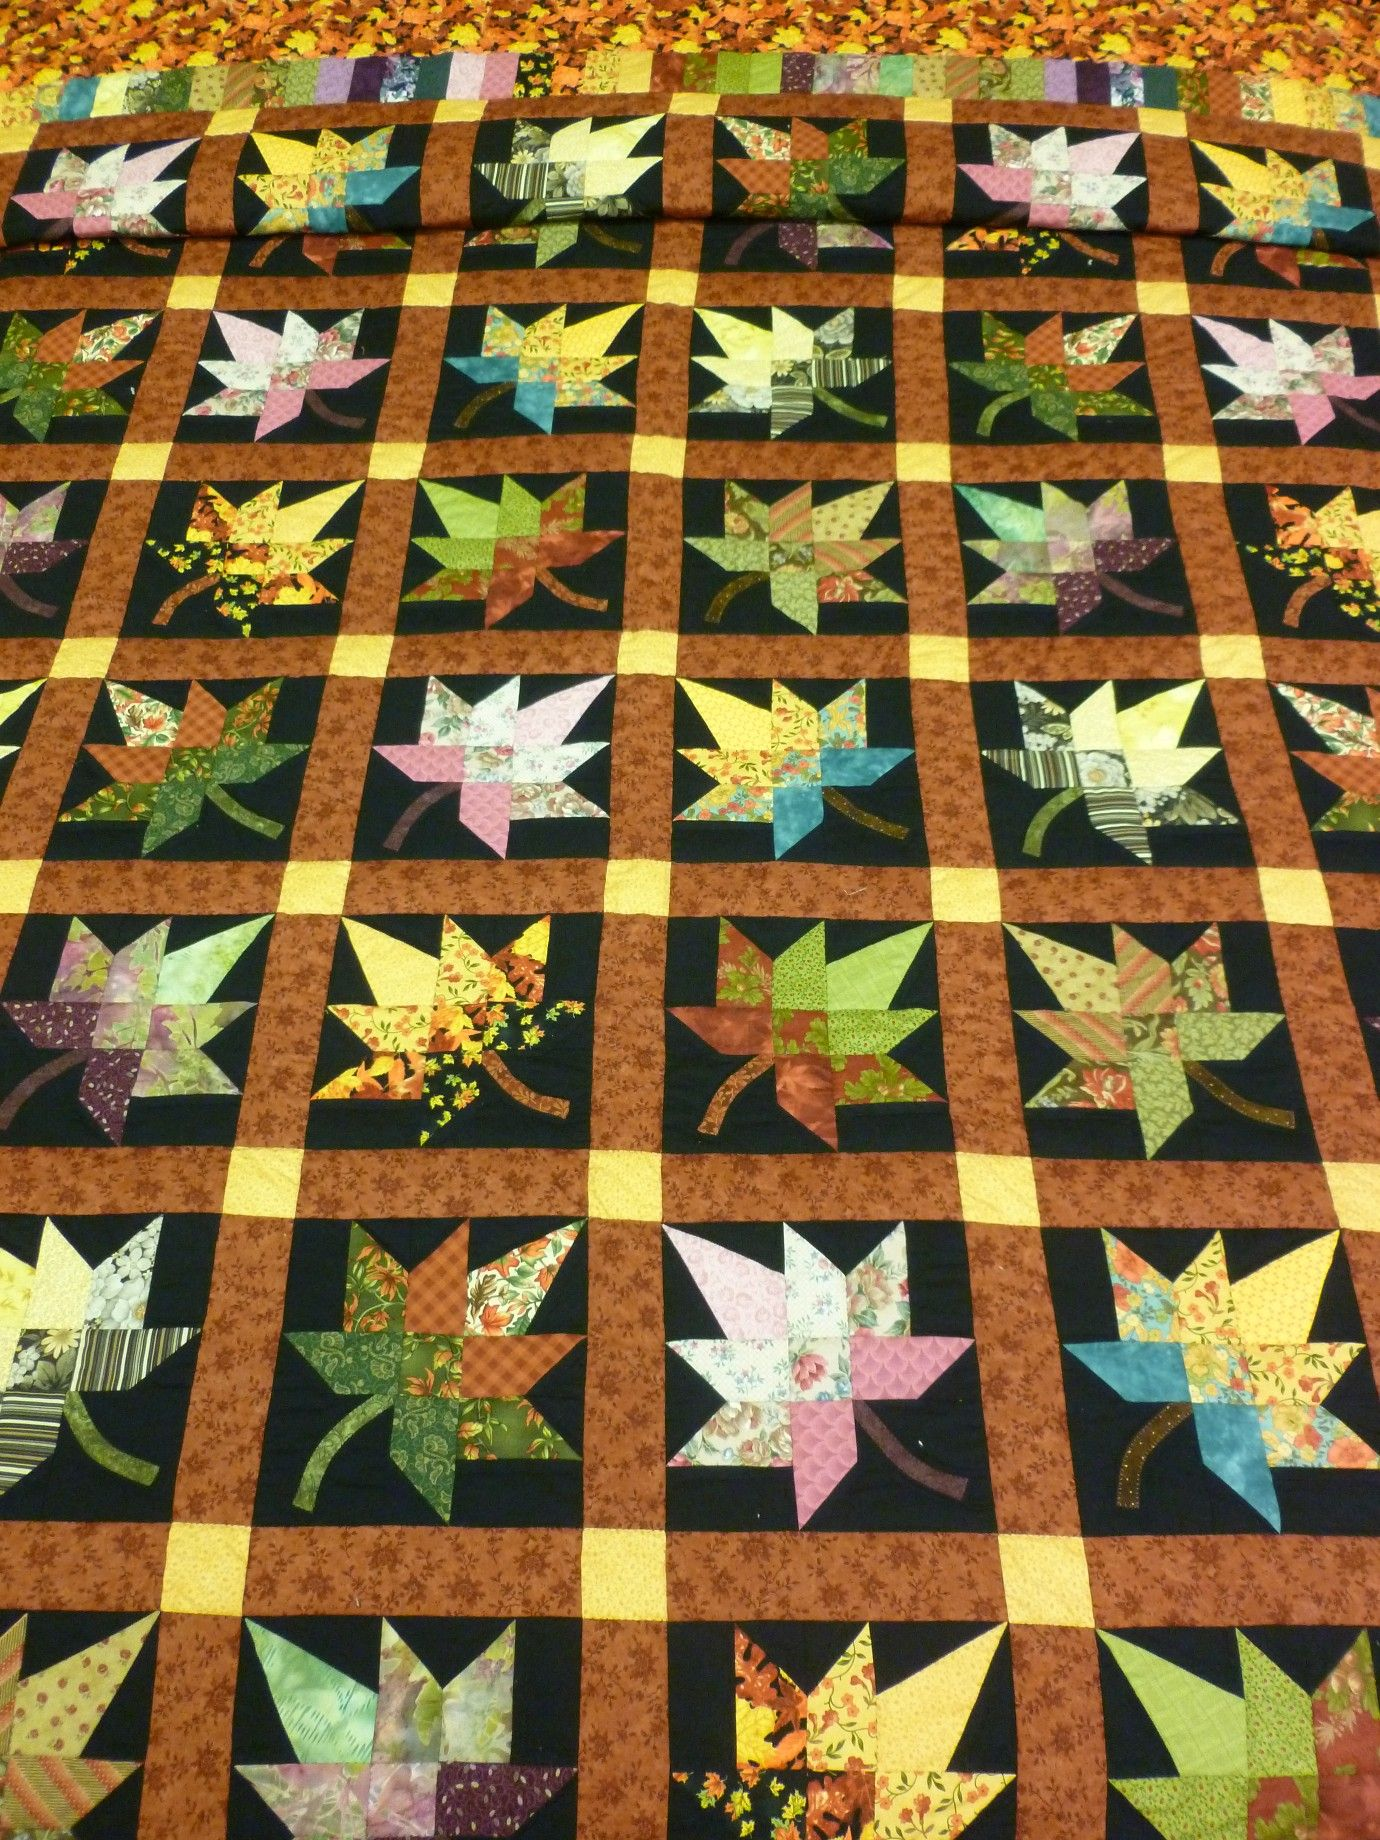 Autumn Splendor Quilt King Family Farm Handcrafts Fall Quilts Quilts Amish Quilts